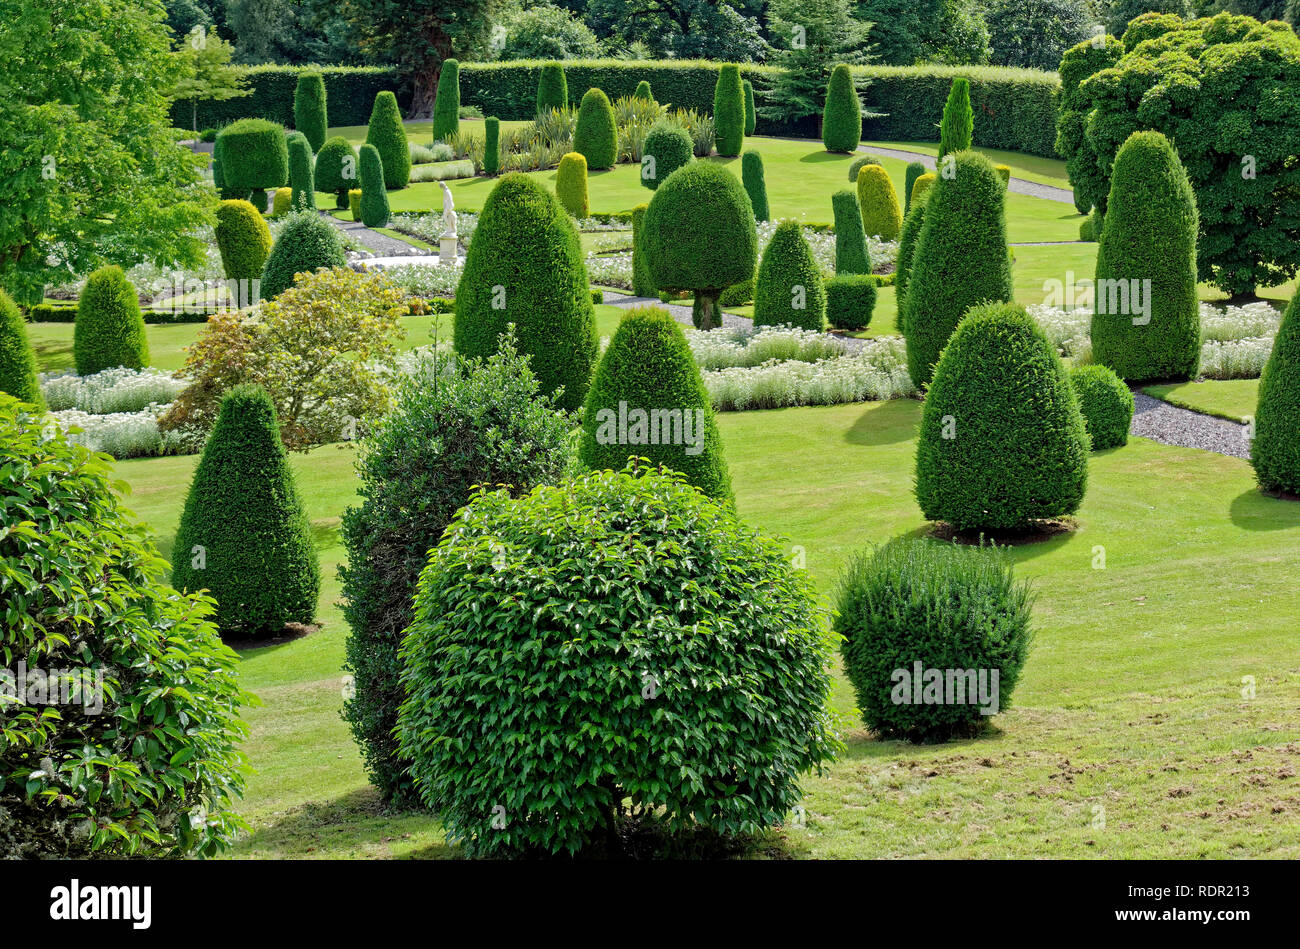 Conifers at Drummond Castle Gardens near Crieff, Perthshire, Scotland, UK - Stock Image